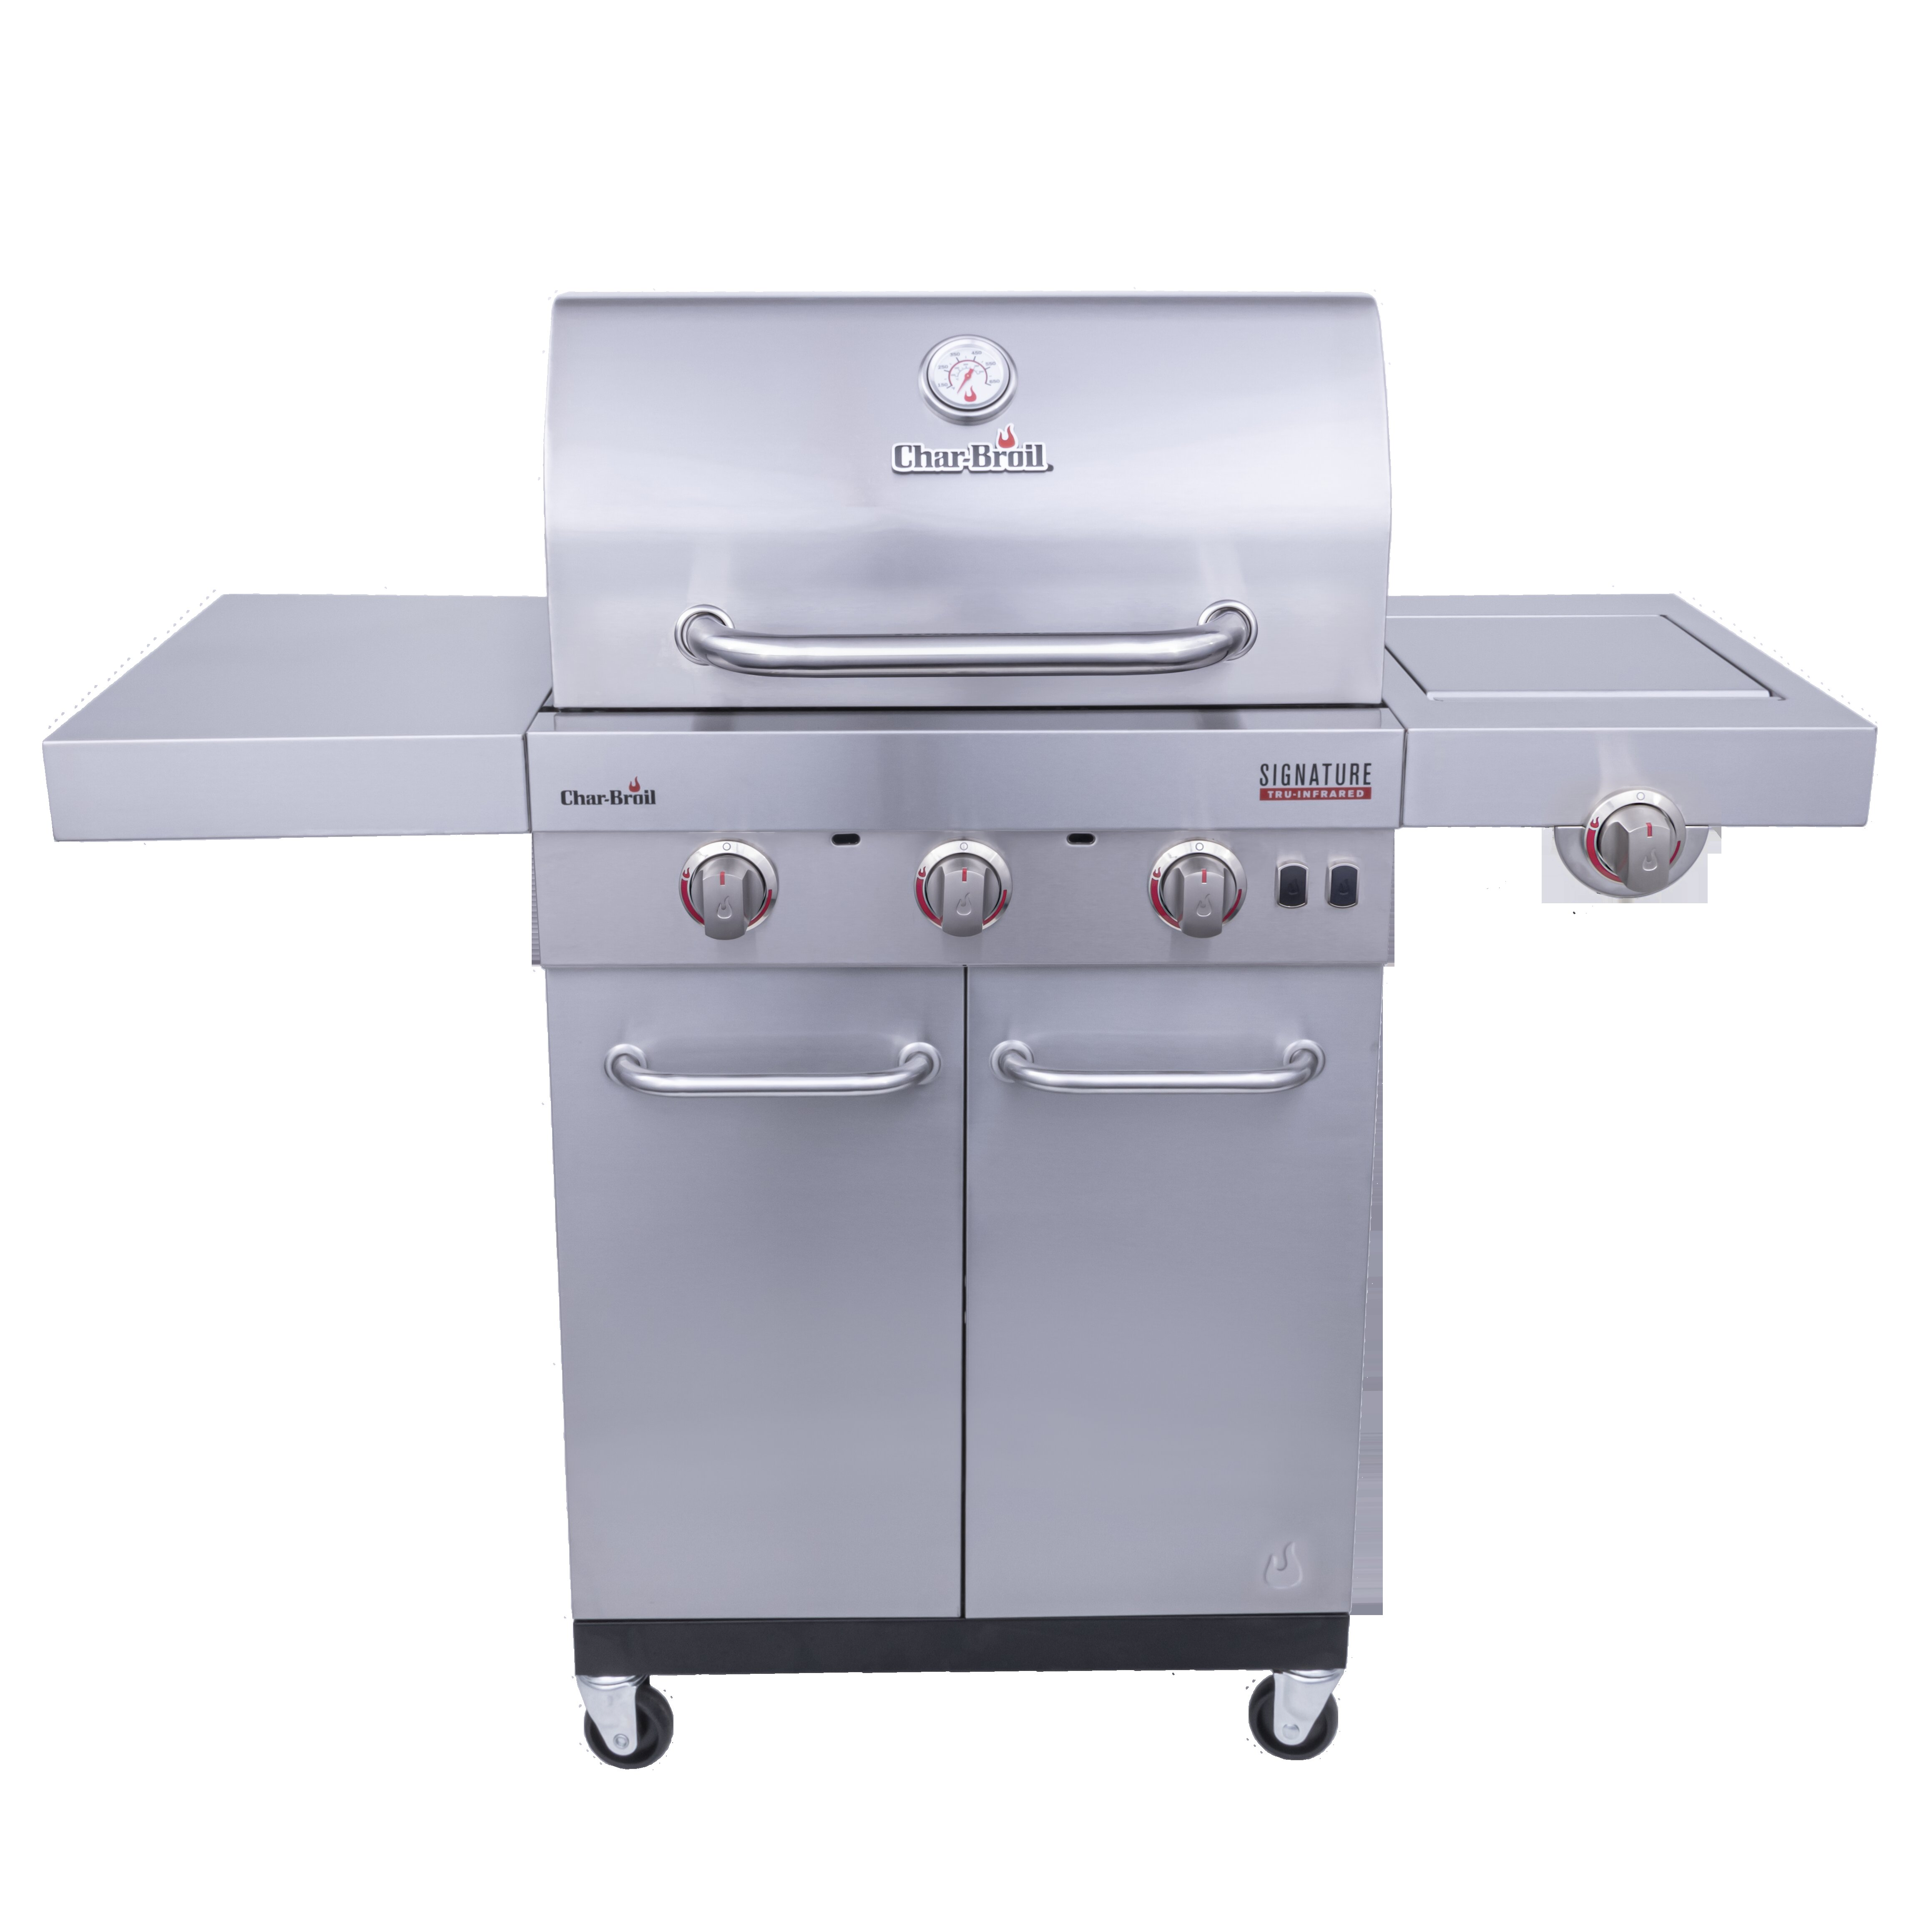 Charbroil Char Broil Signature 3 Burner Propane Gas Grill With Cabinet Reviews Wayfair